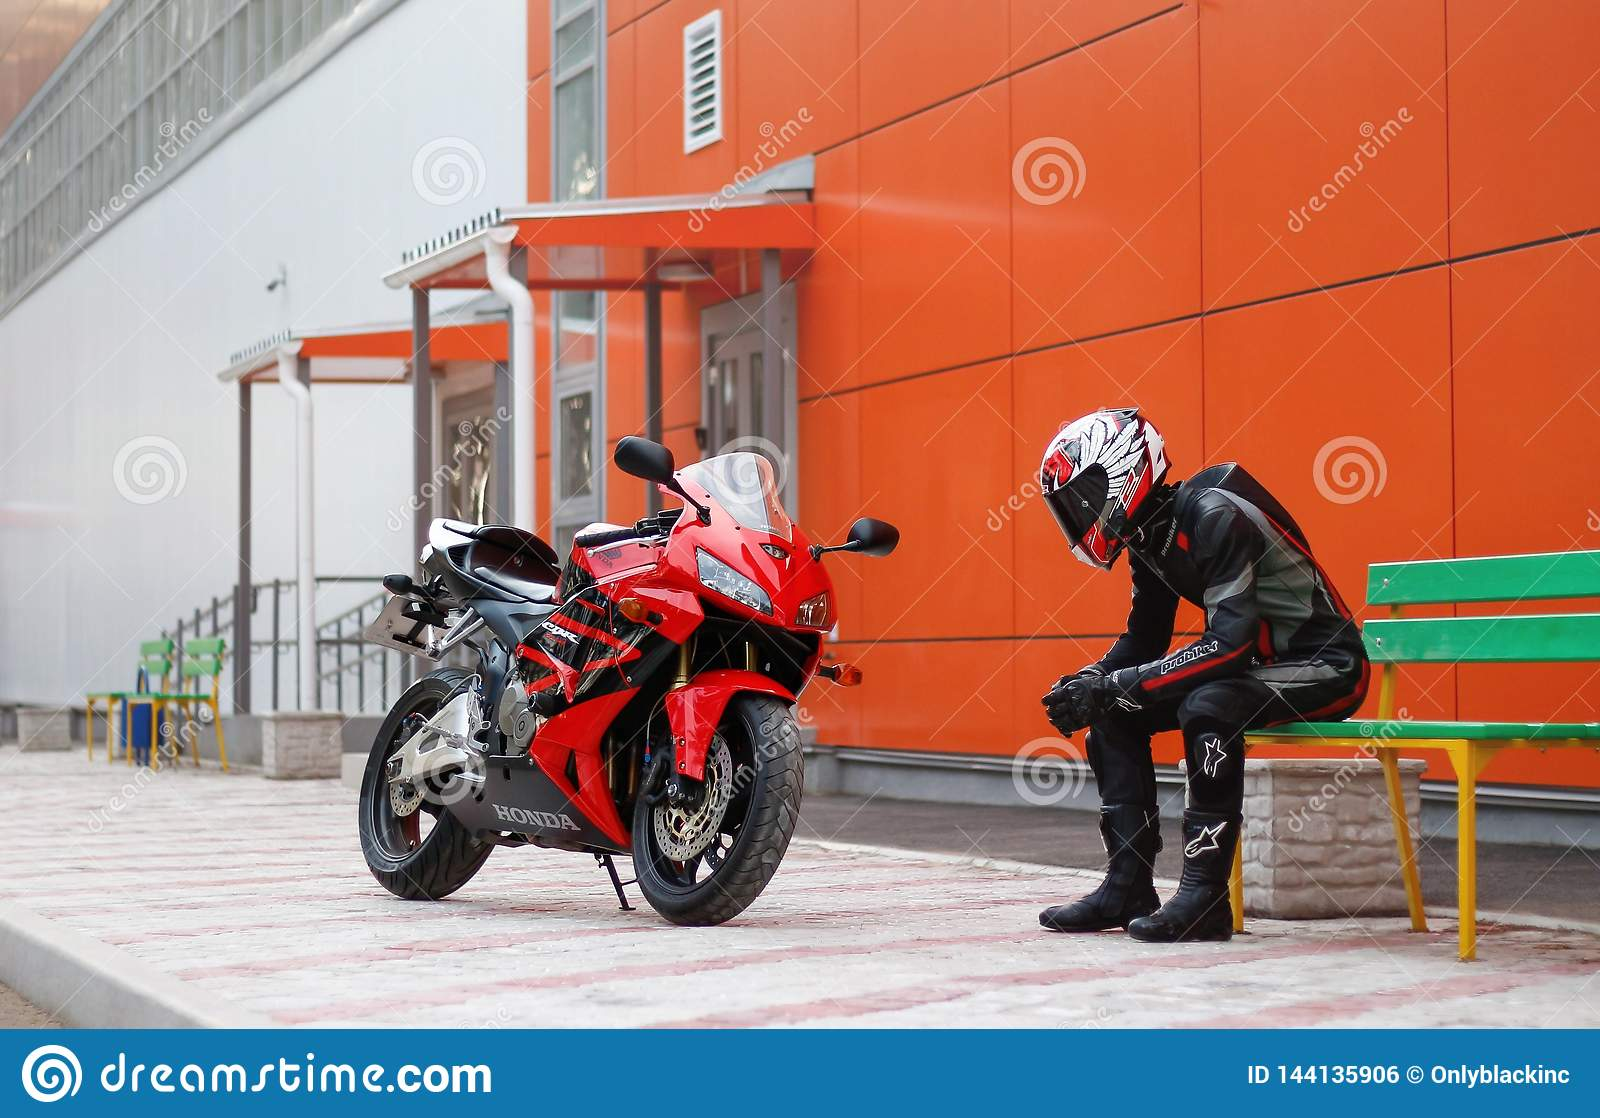 KRASNOYARSK, RUSSIA - April 3, 2019: Beautiful Motorcyclist